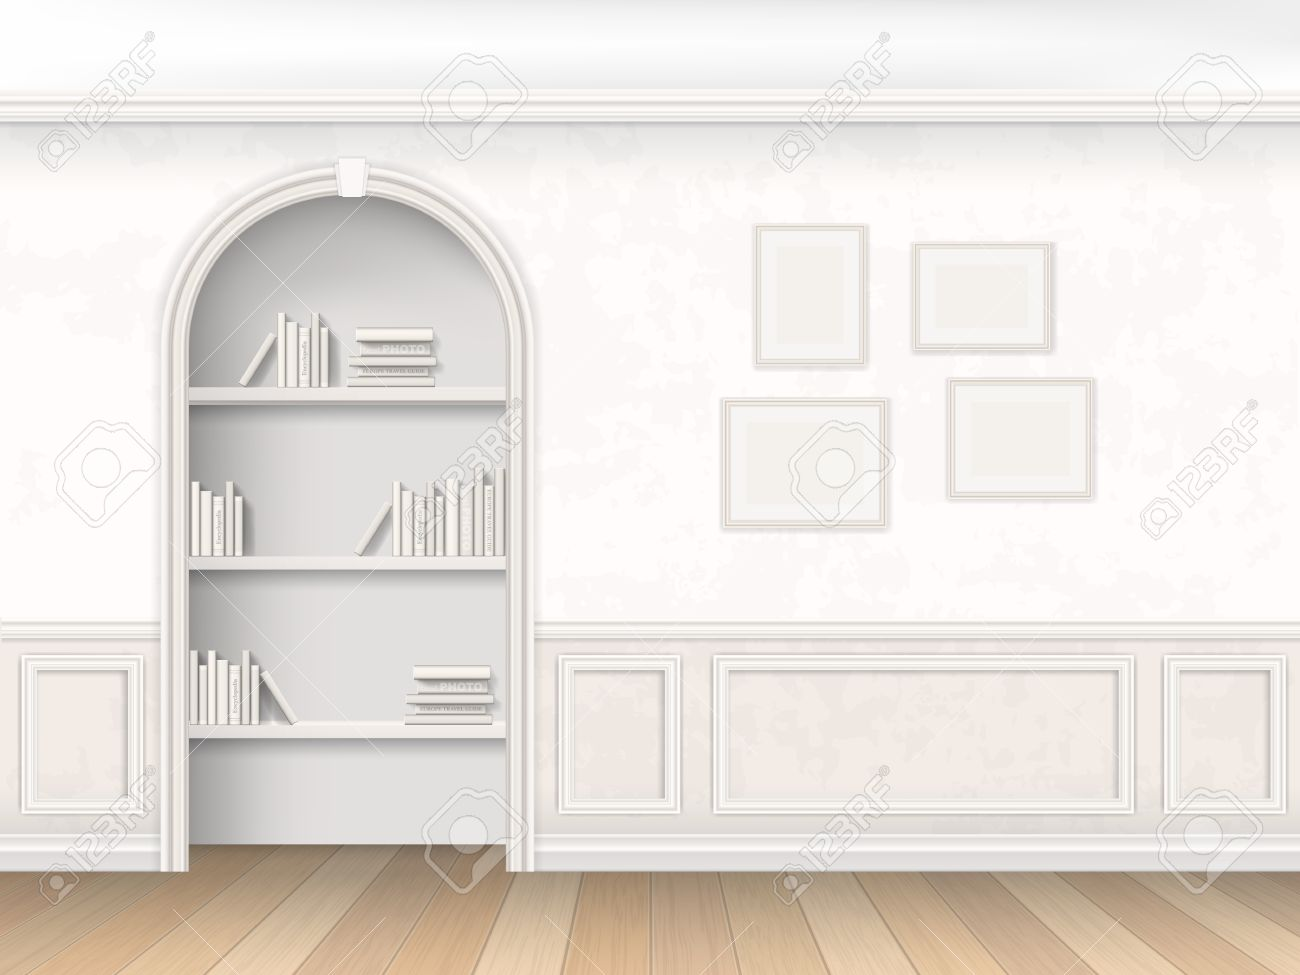 Decorative Wall Molding the wall room with arch, books and decorative wall panels